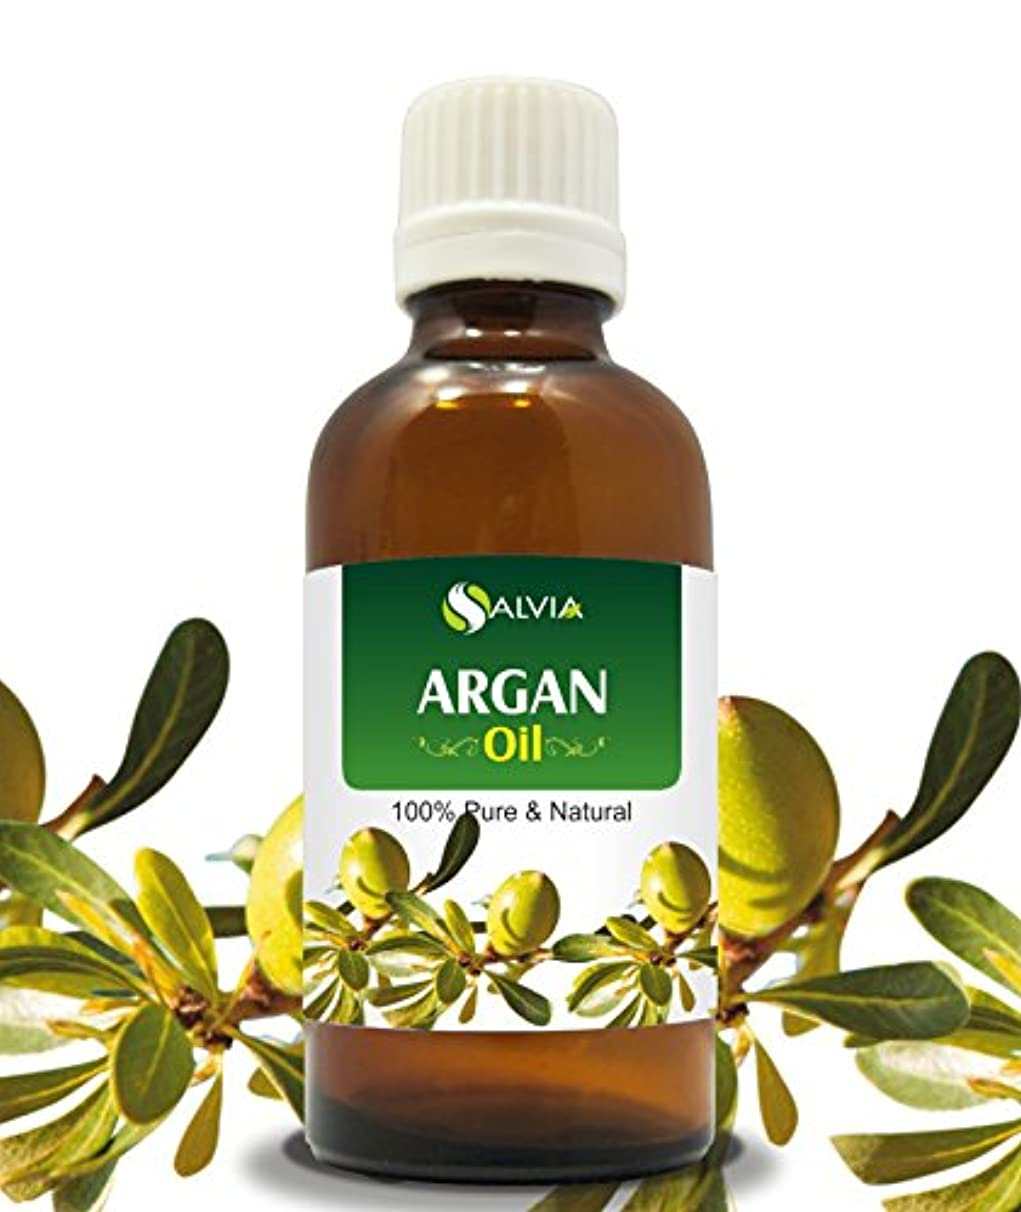 ARGAN OIL 100% NATURAL PURE UNDILUTED UNCUT OILS 30ML